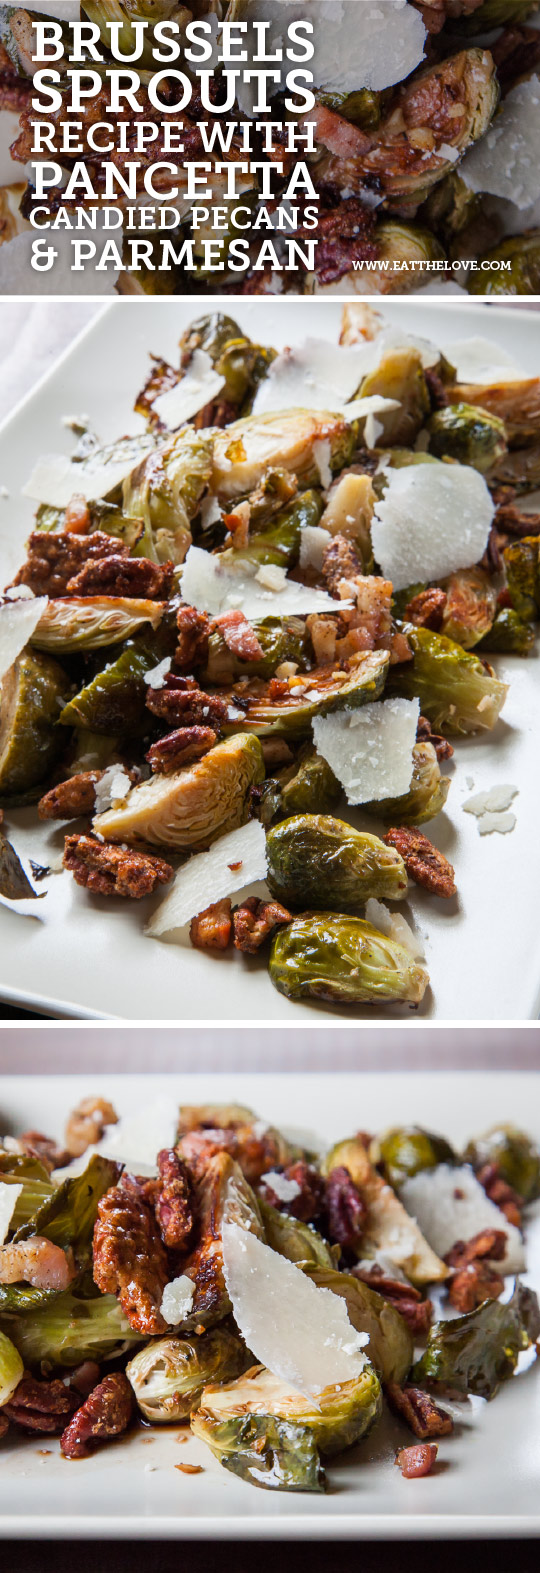 Roasted Brussels Sprouts Recipe with Pancetta, Candied Pecans and Parmesan. Photo and recipe by Irvin Lin of Eat the Love.